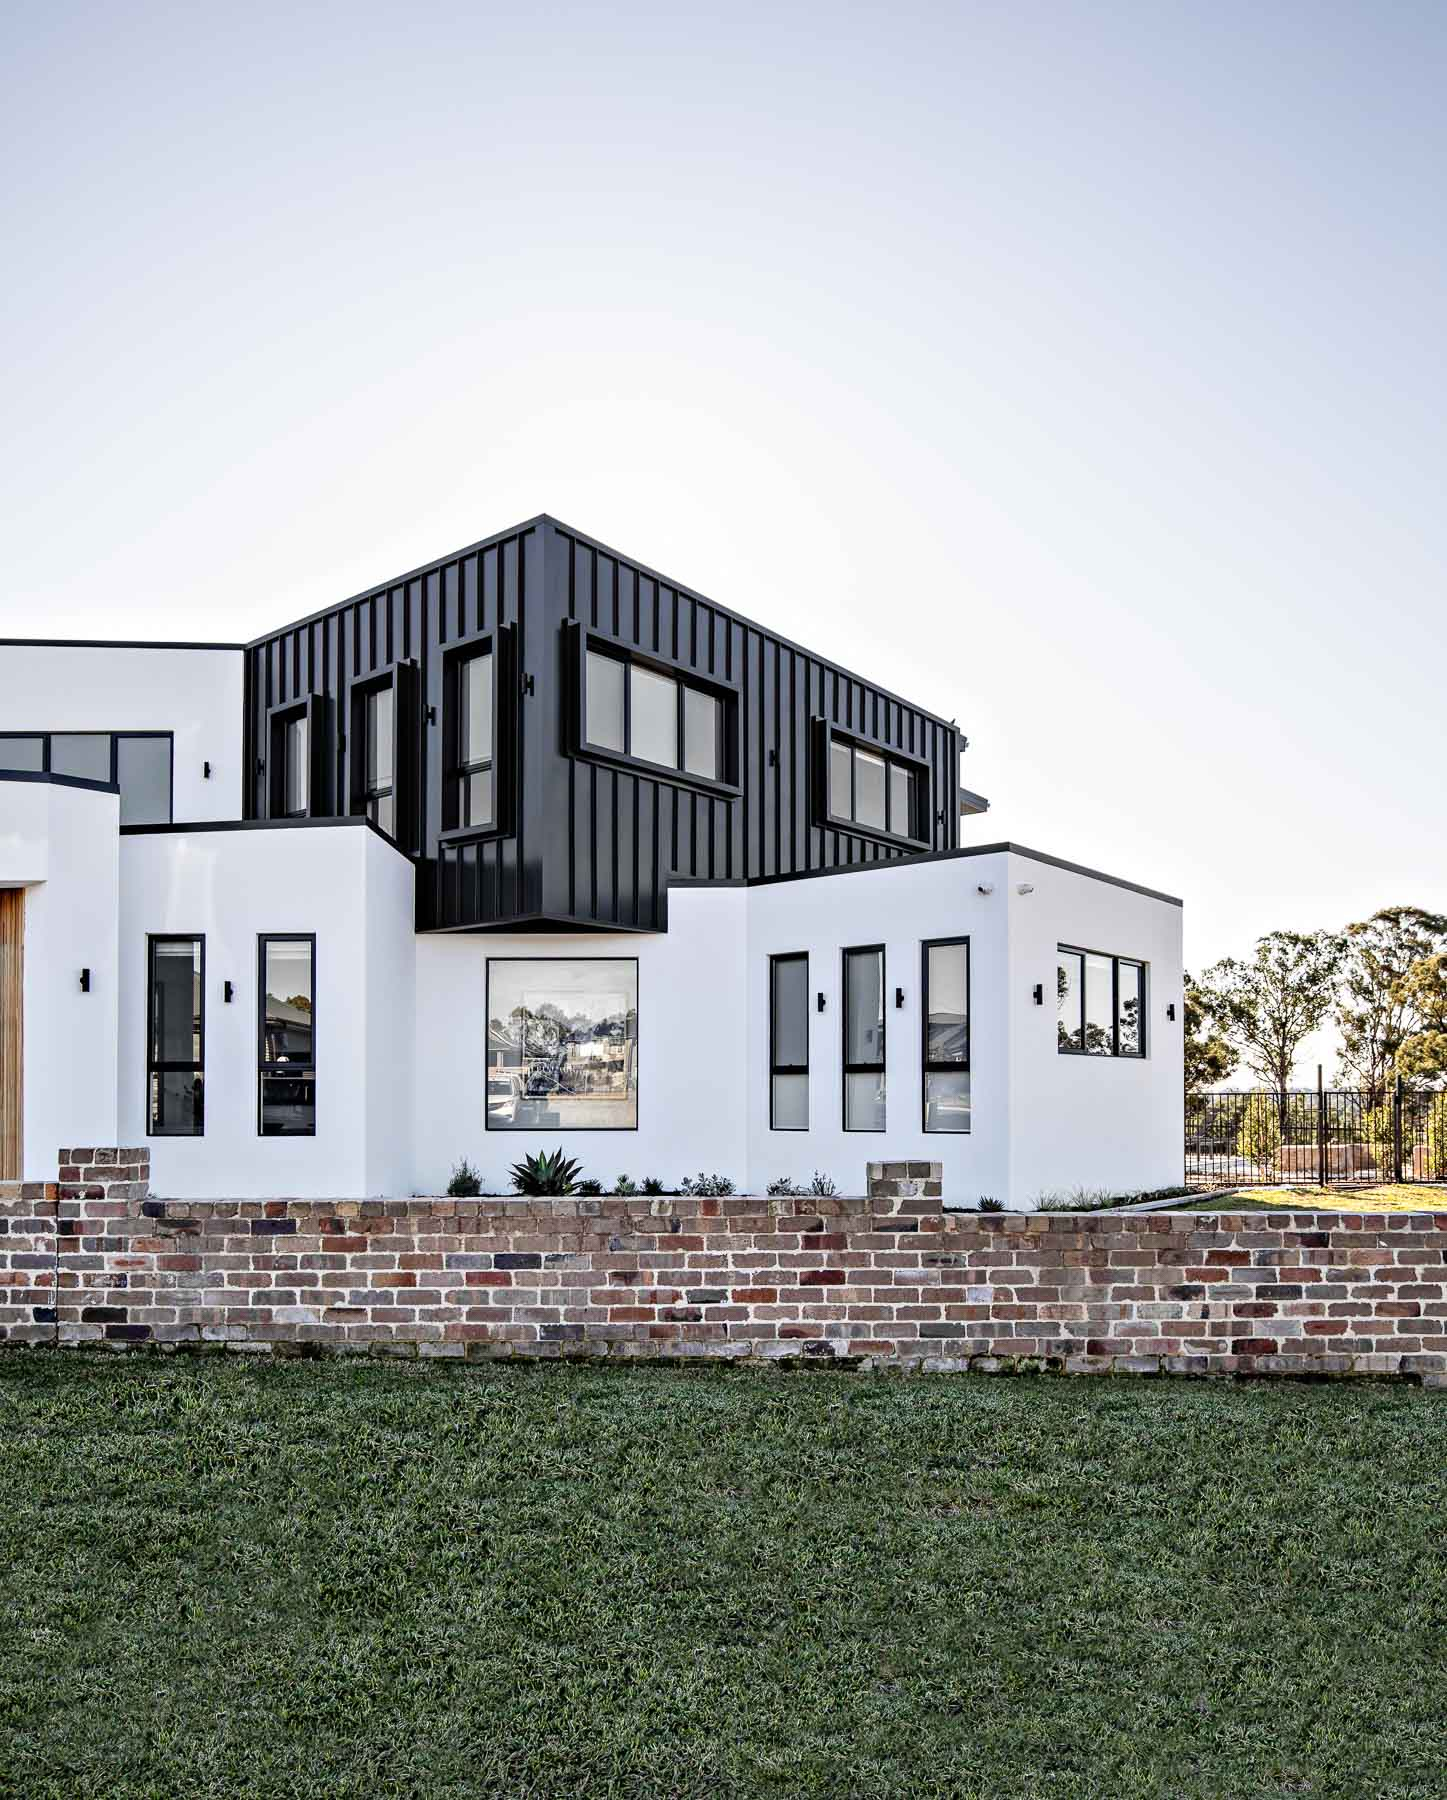 HIA NSW Award recognition for our latest Custom home build